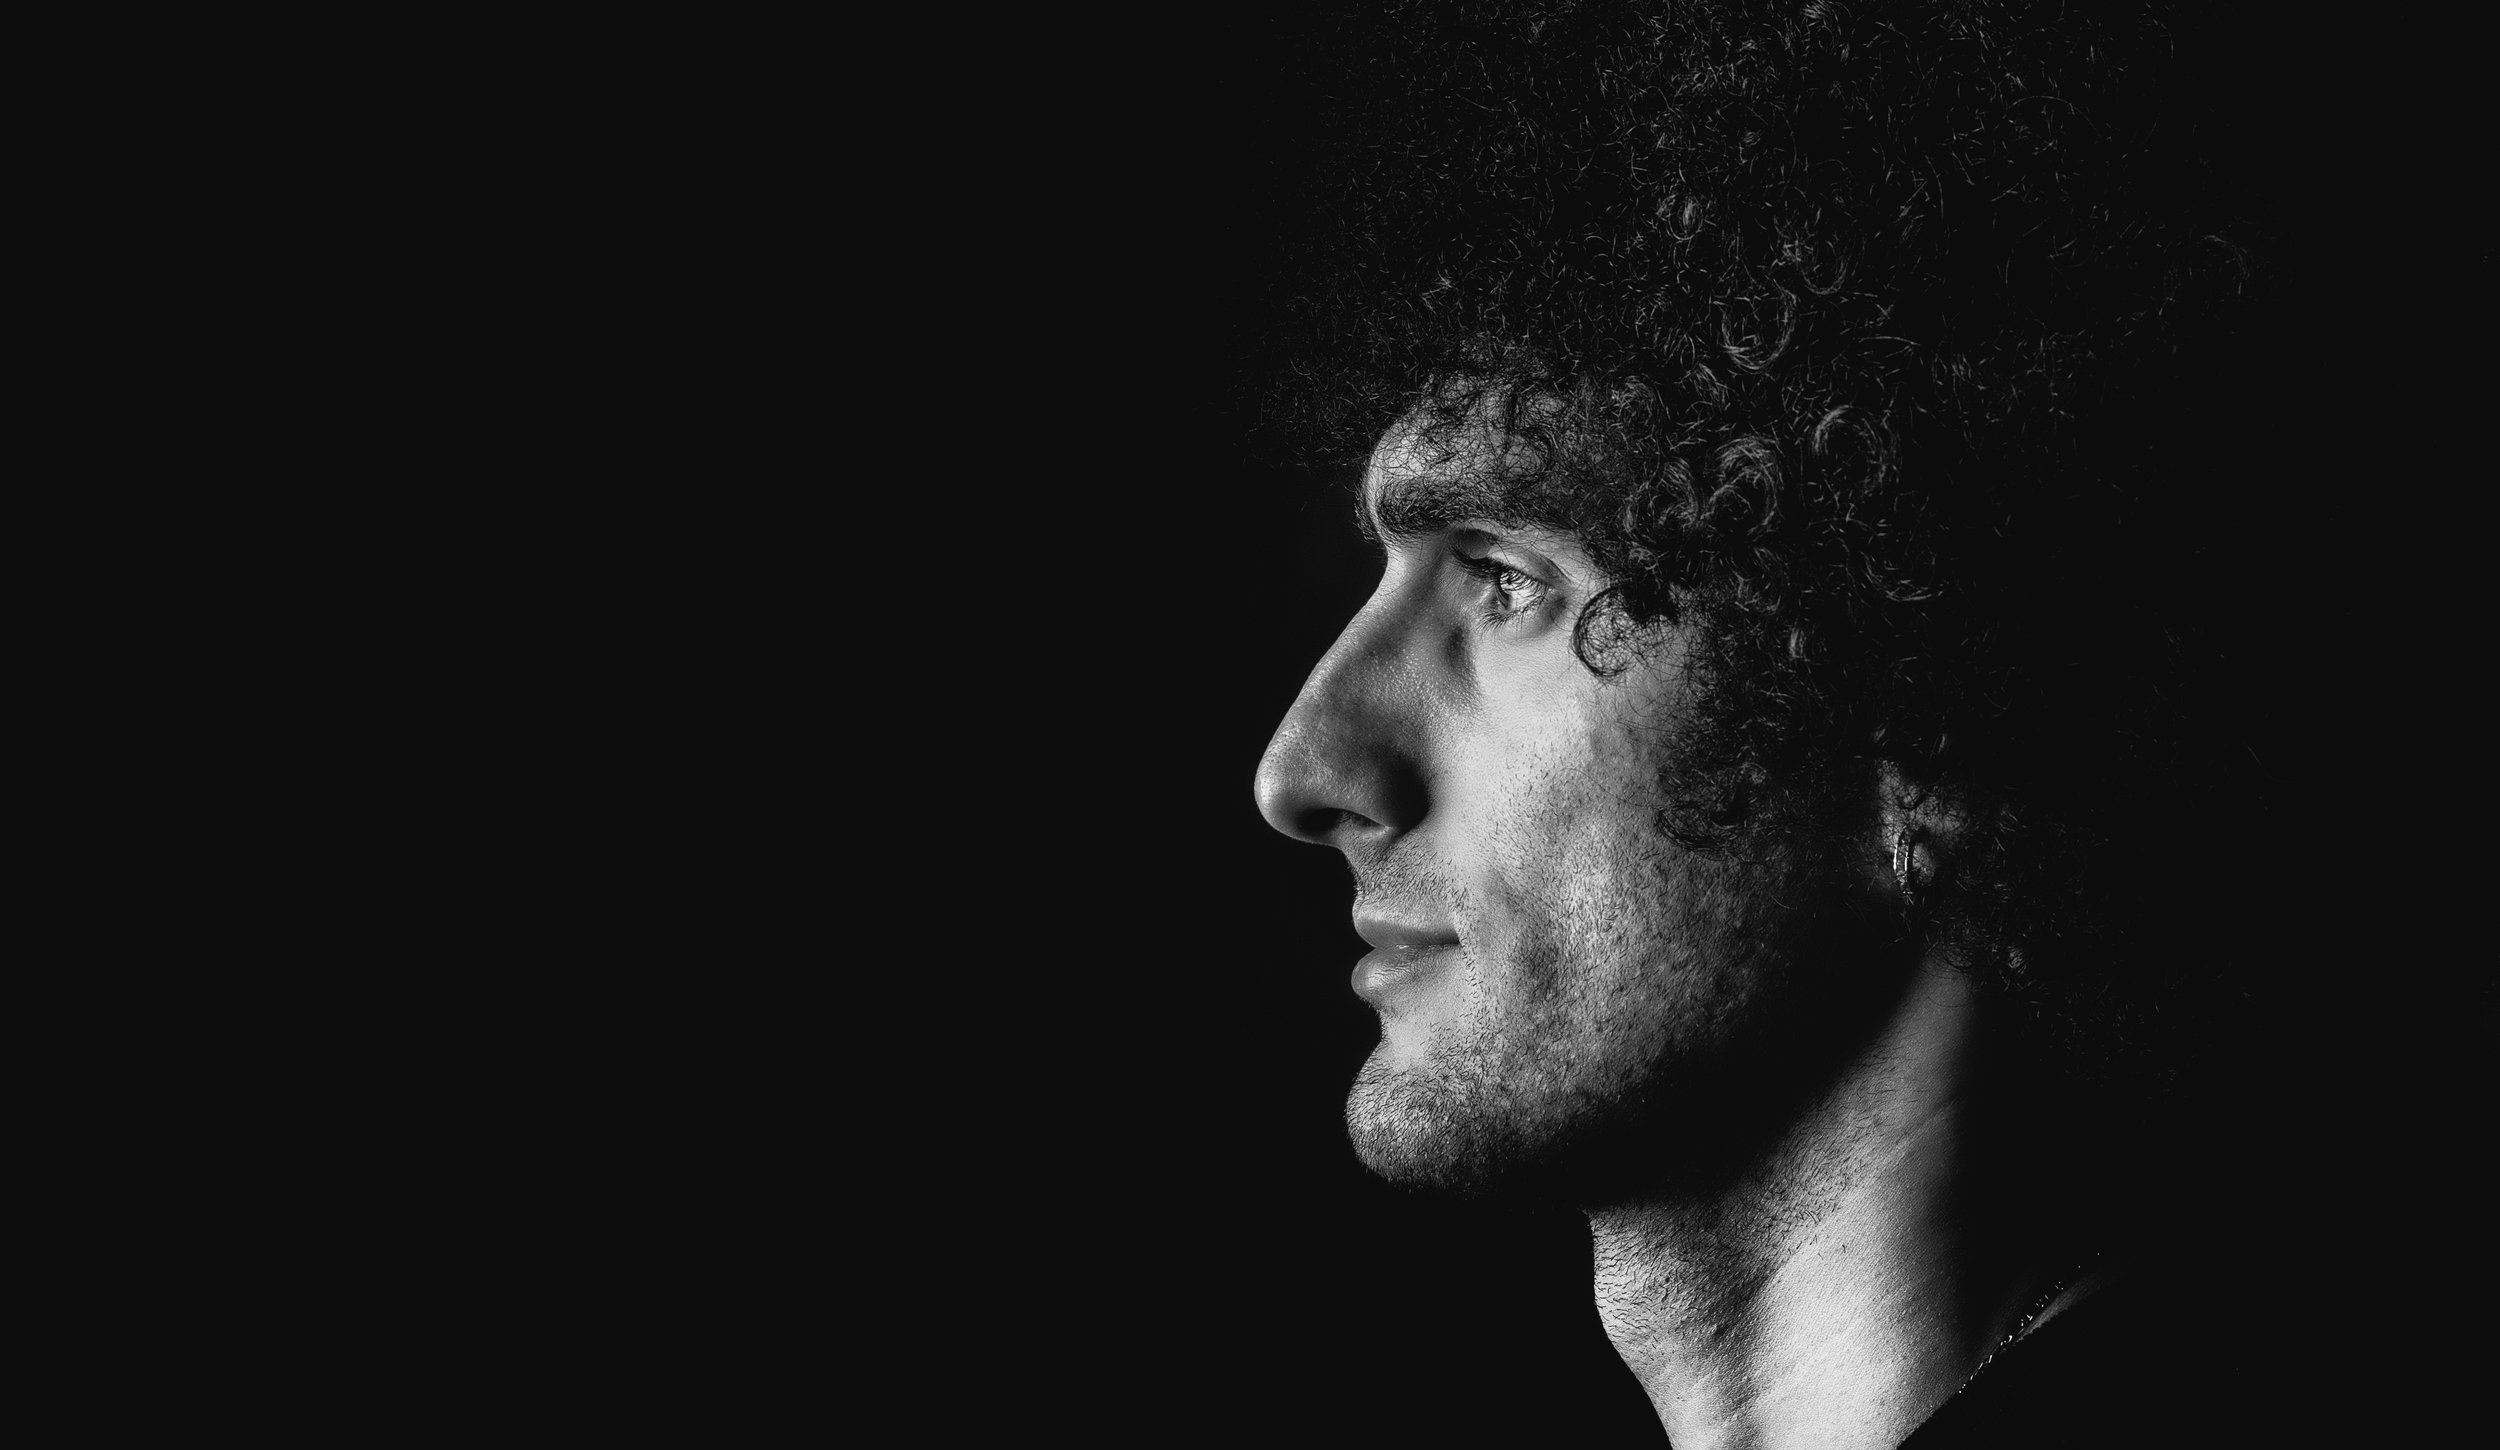 marouane fellaini of Manchester United Photo Credit Paul Cooper